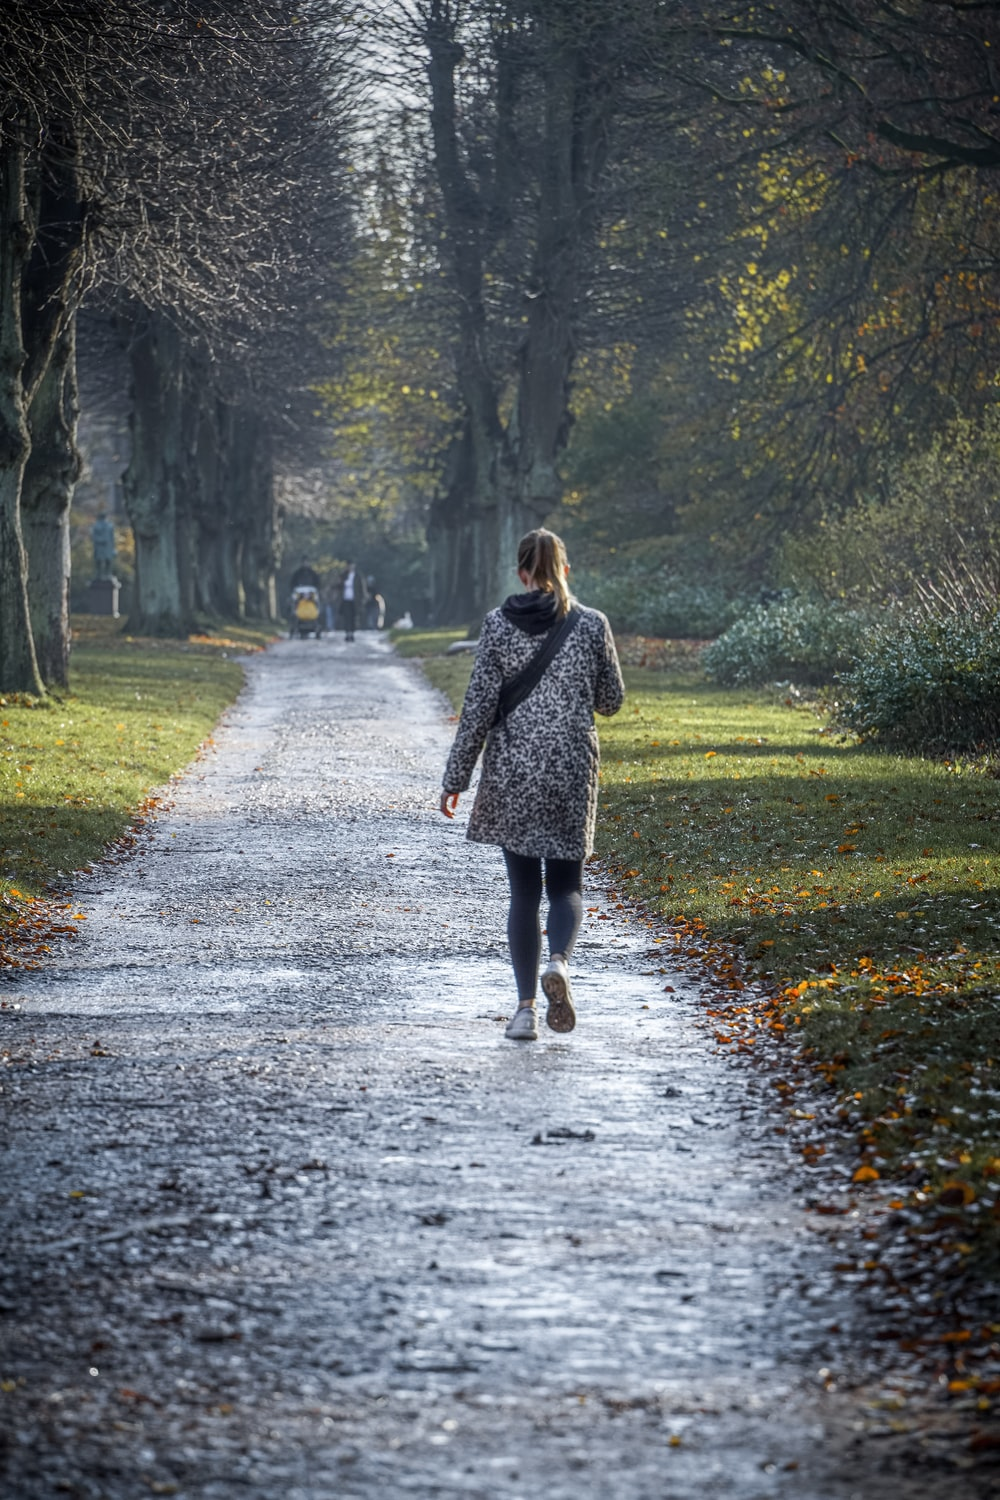 woman in black and white polka dot coat walking on pathway